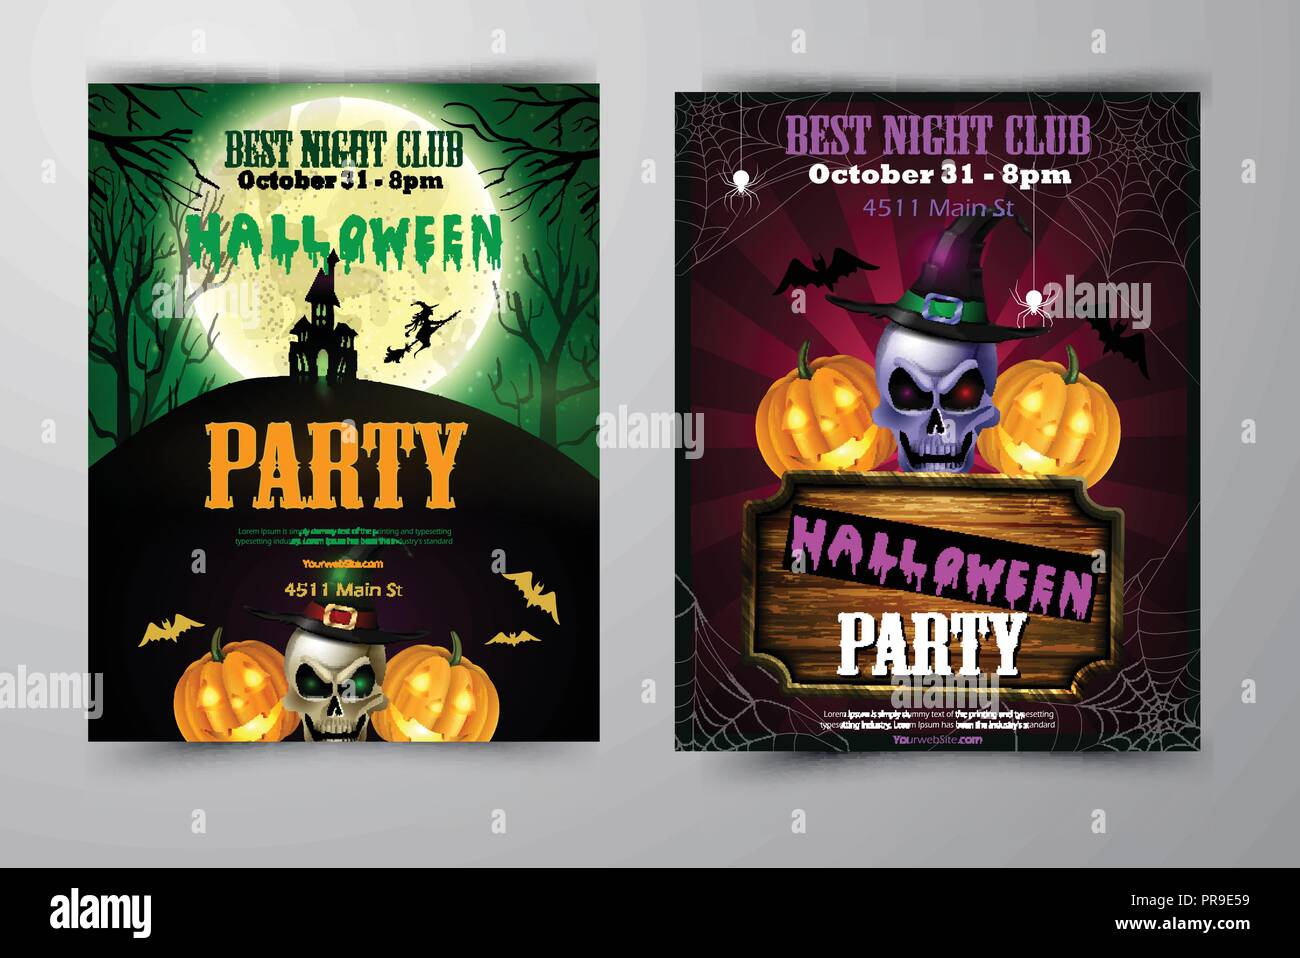 halloween party flyer with pumpkins stock vector art illustration